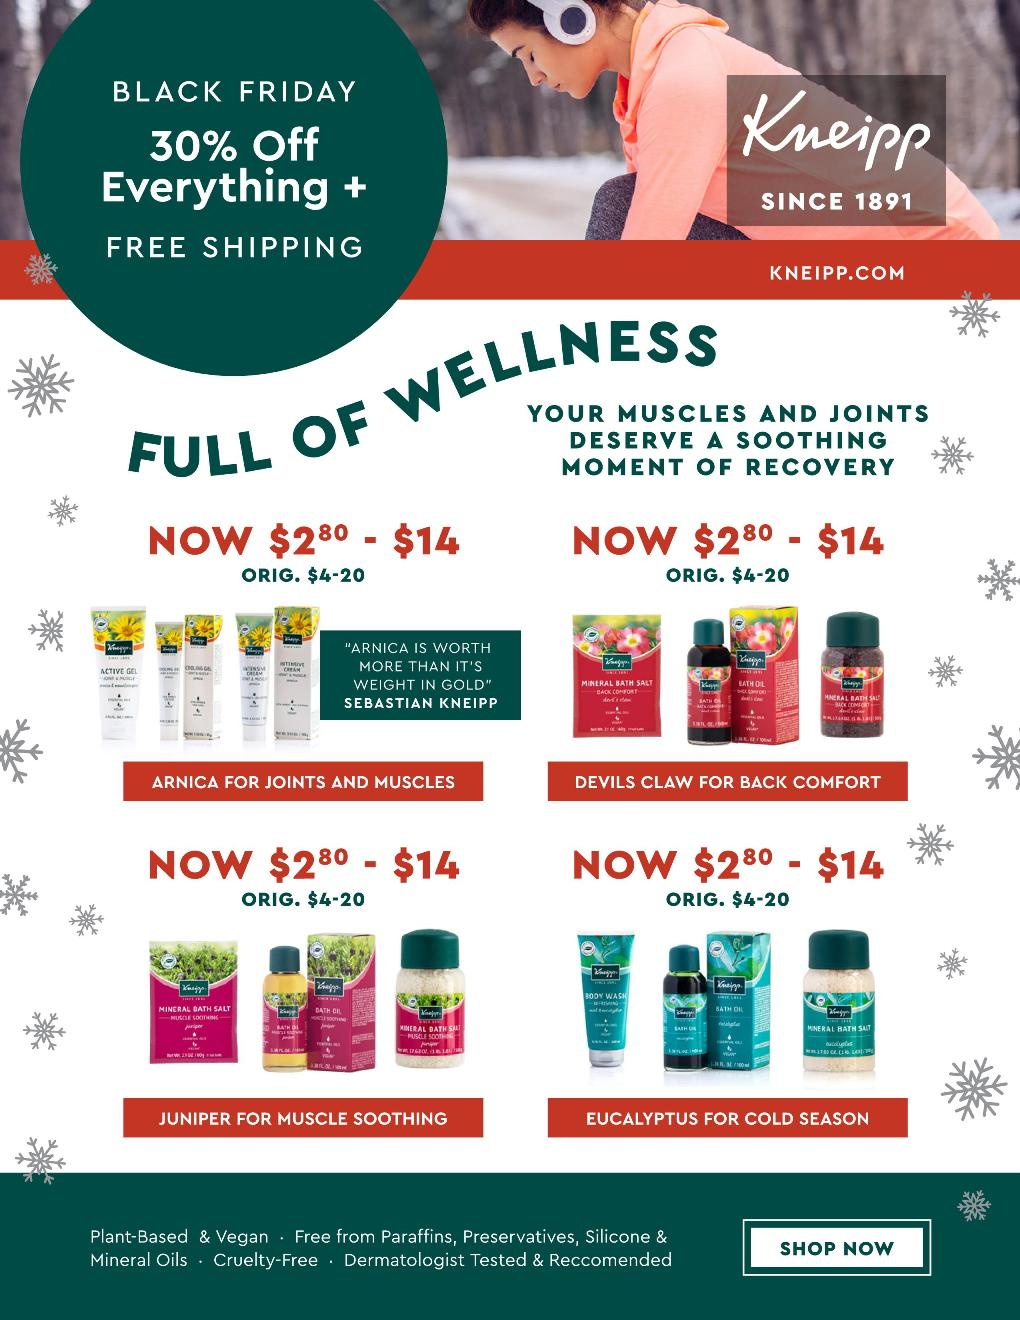 Kneipp Black Friday page 4